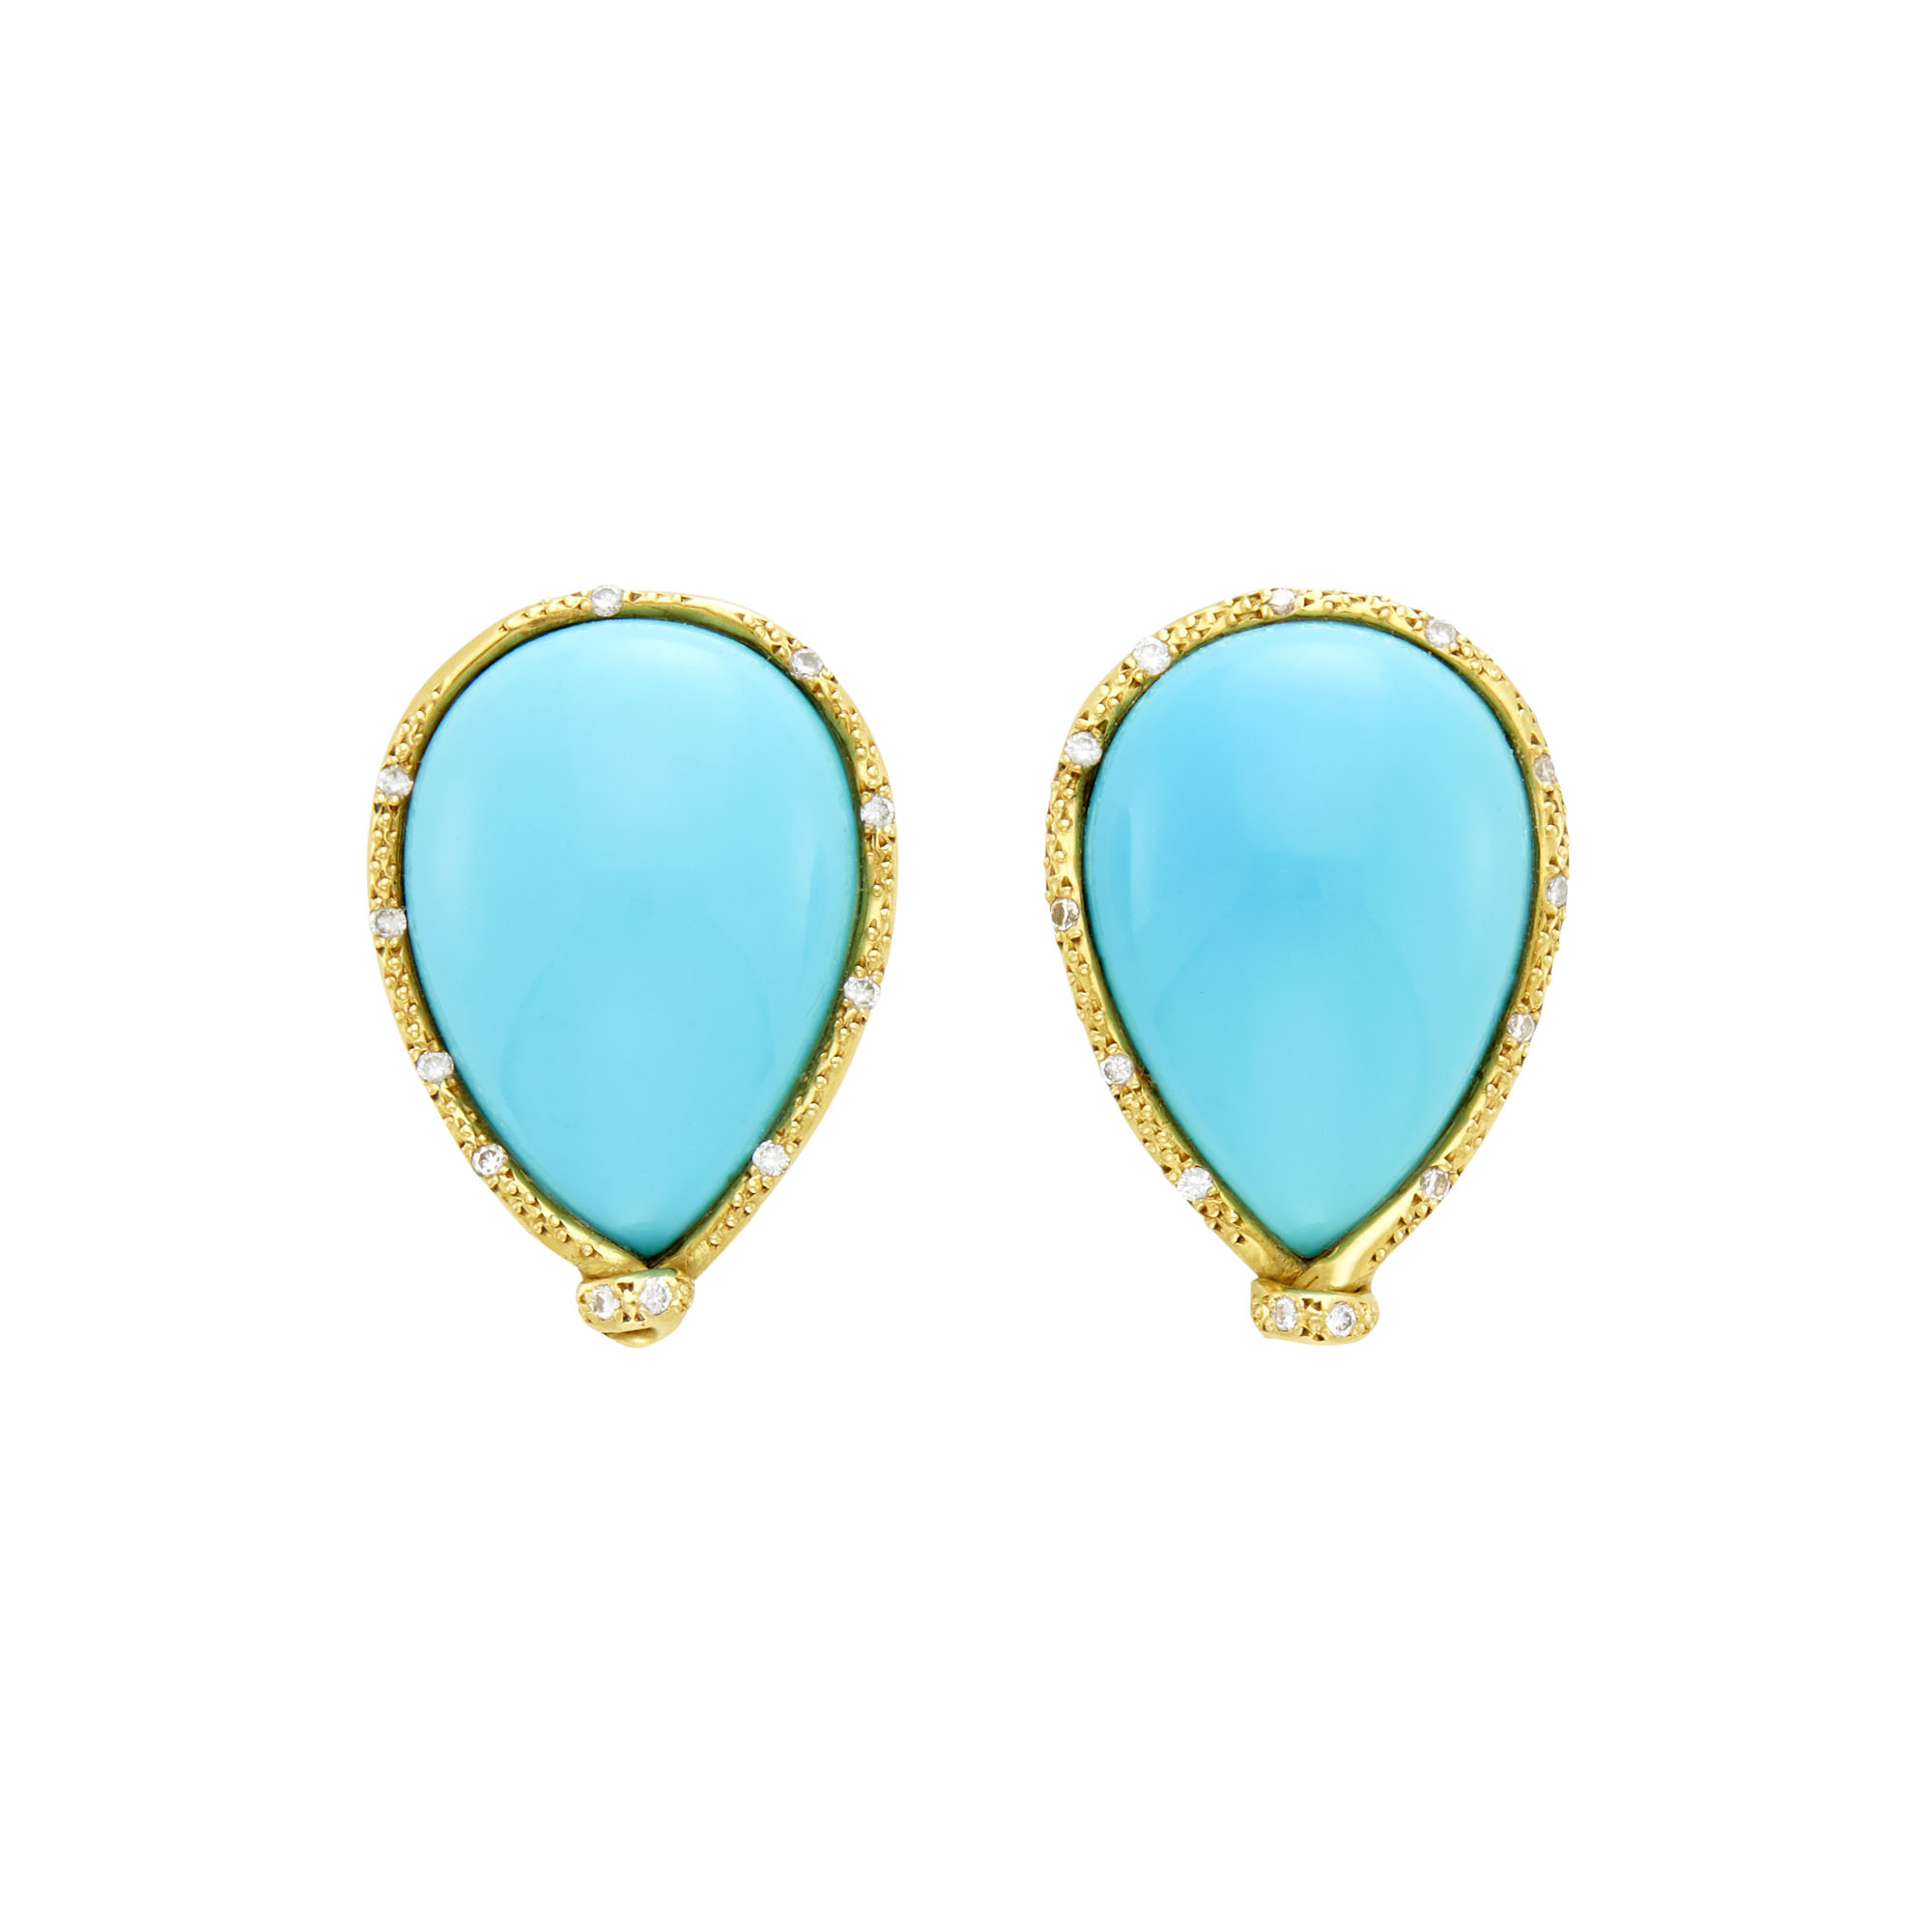 Lot image - Pair of Gold, Reconstituted Turquoise and Diamond Earclips